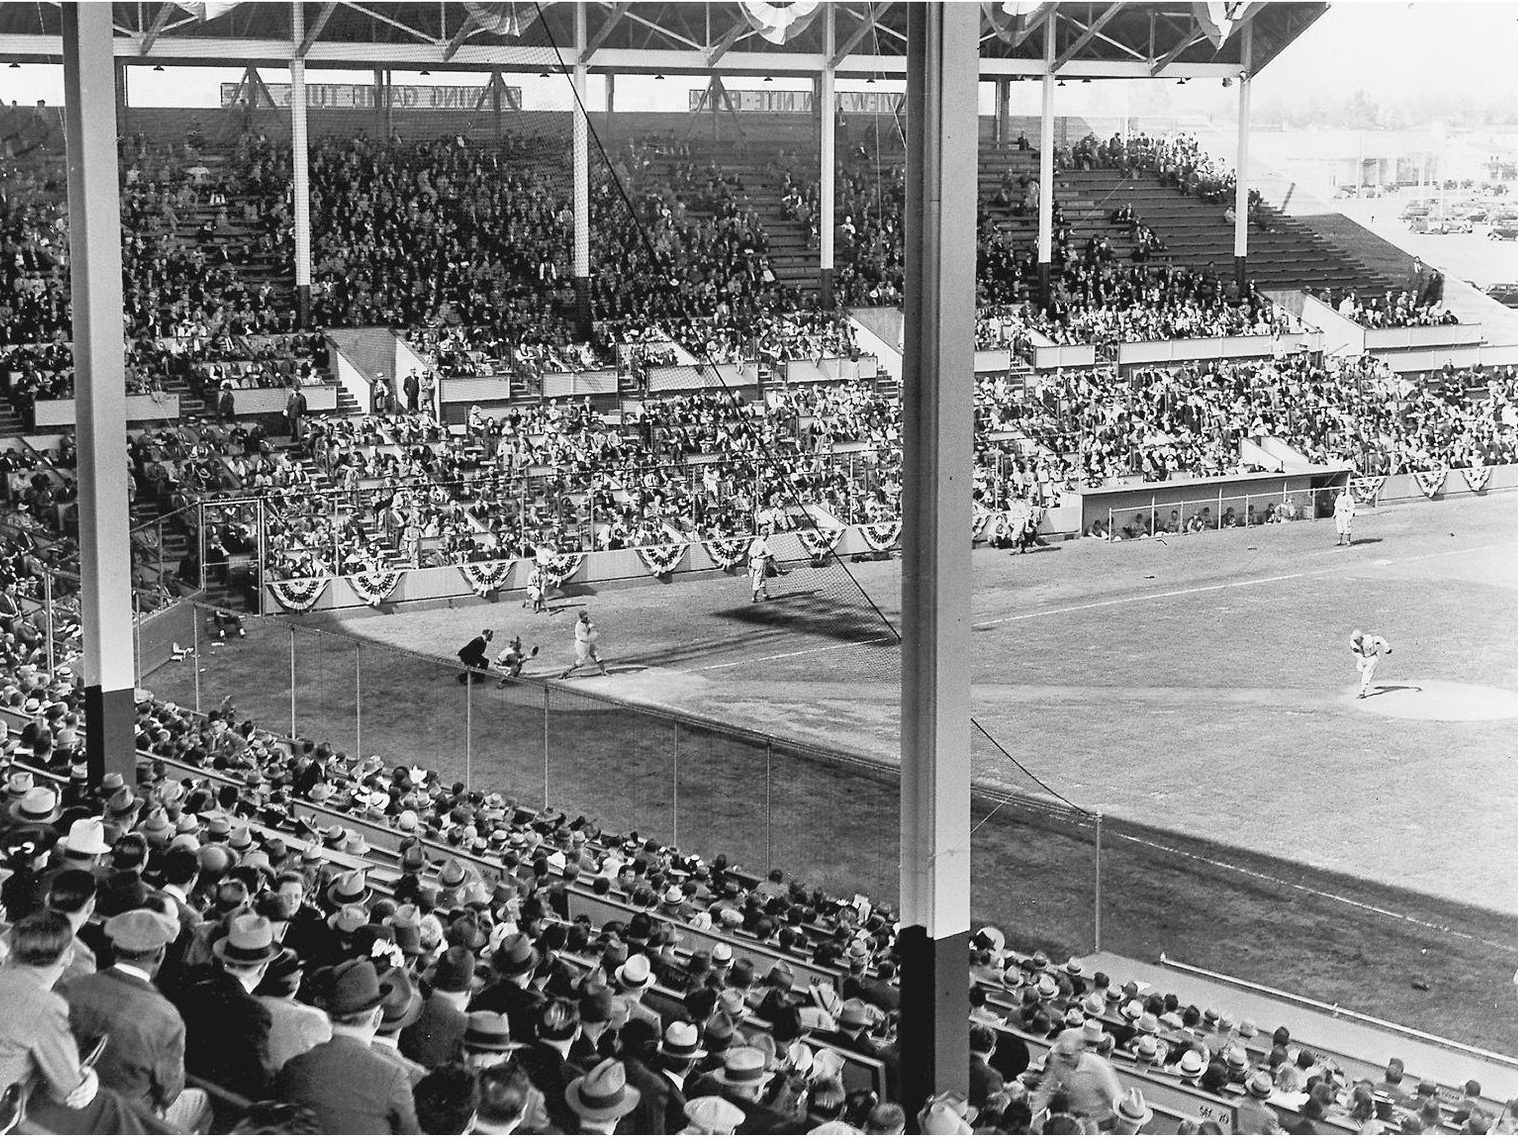 Opening day at Gilmore Field, May 2, 1939. Photo via Richard Beverage Collection,  The Hollywood Stars .